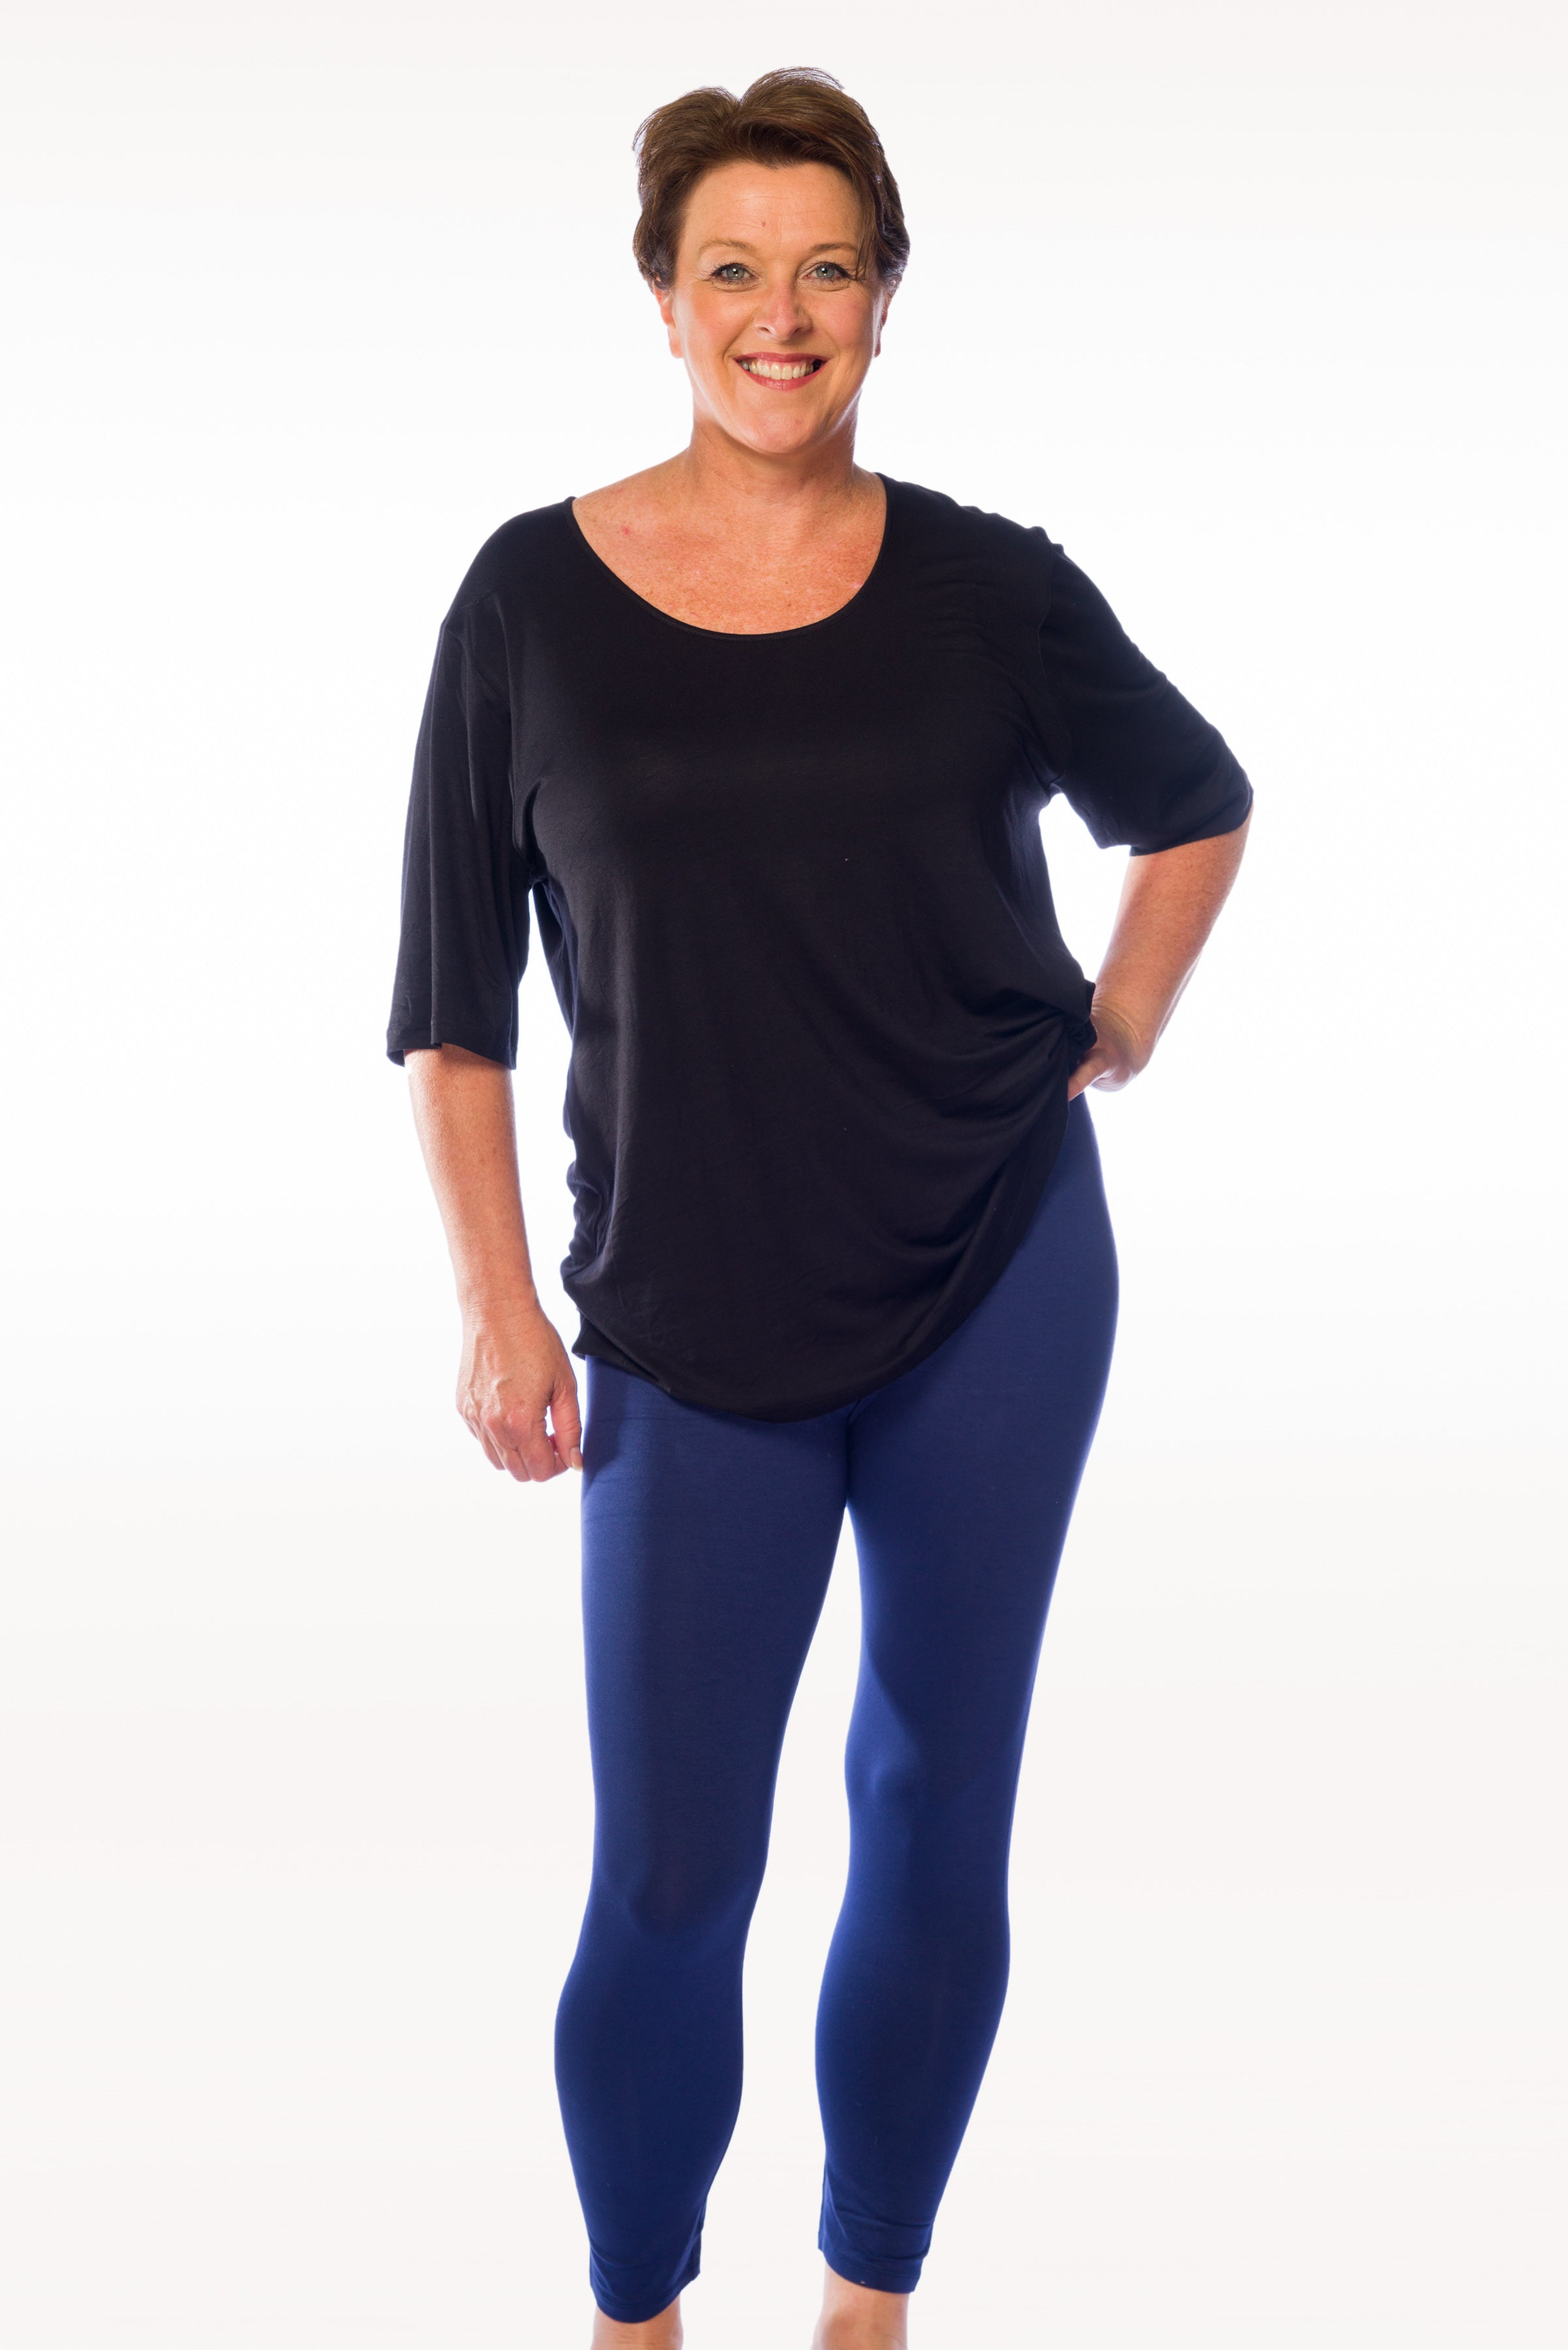 Modal Leggings 7/8 length